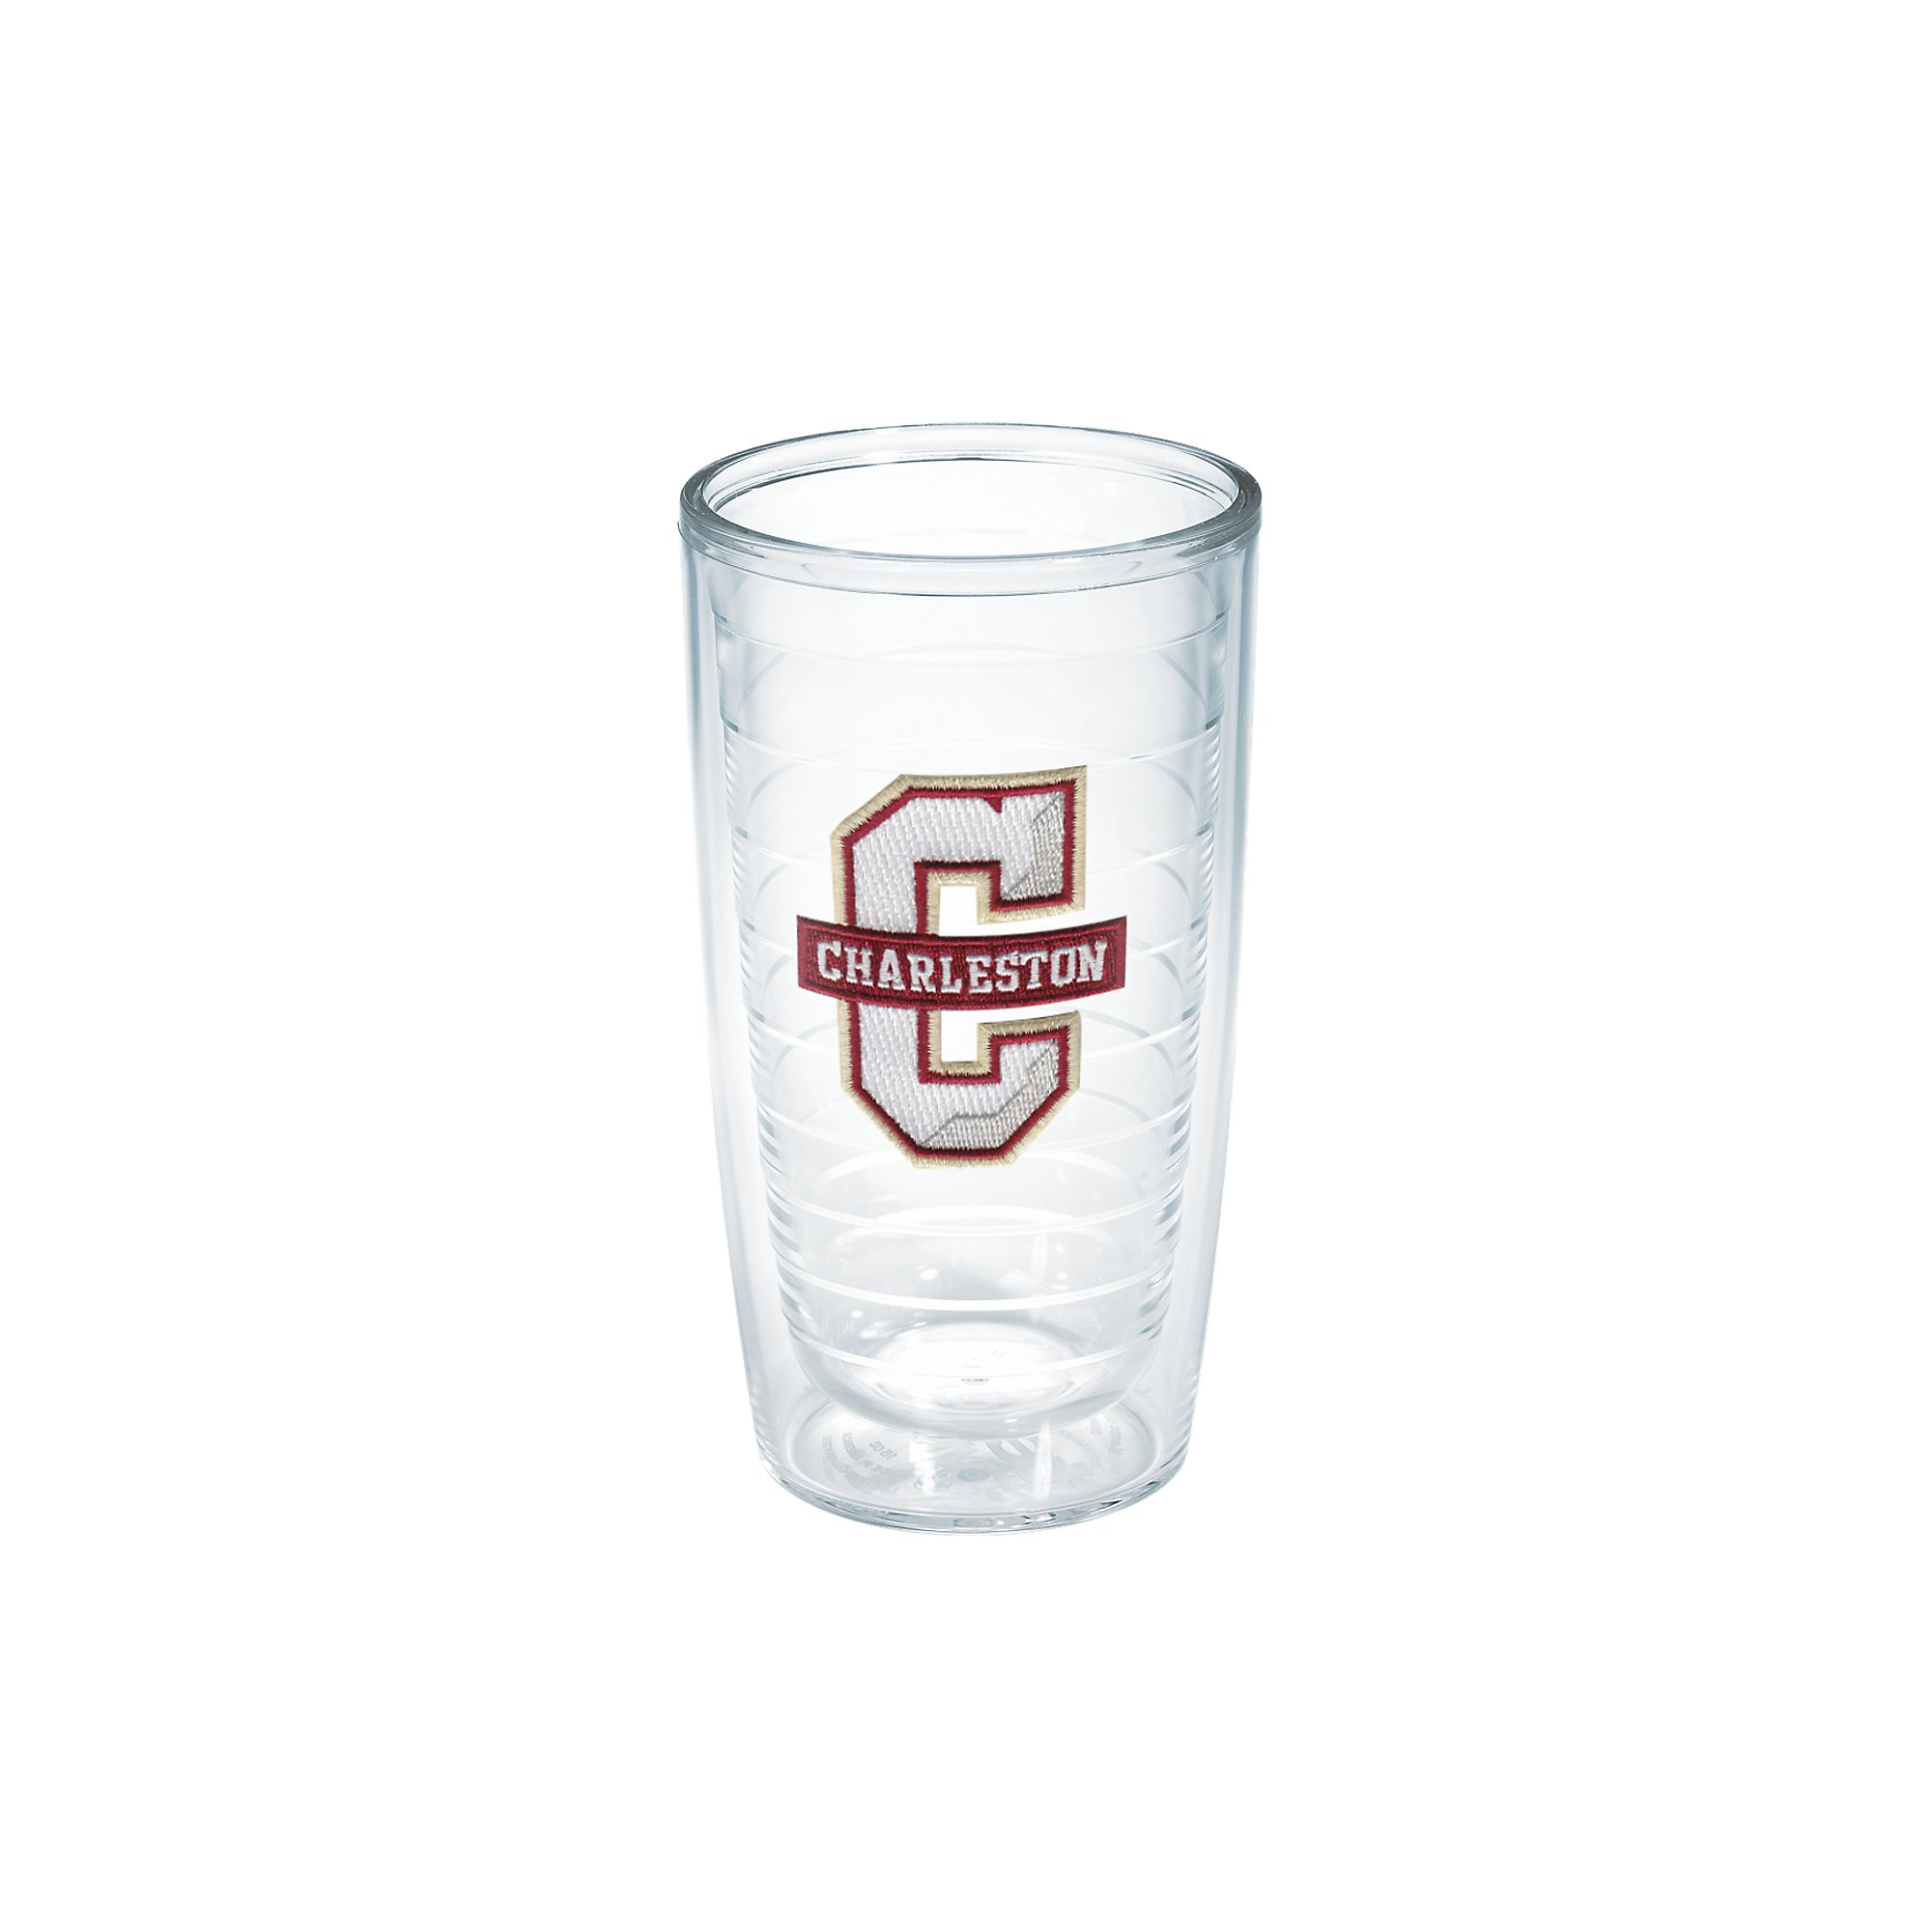 Tervis 1133370 Charleston College Emblem Individual Tumbler, 16 oz, Clear